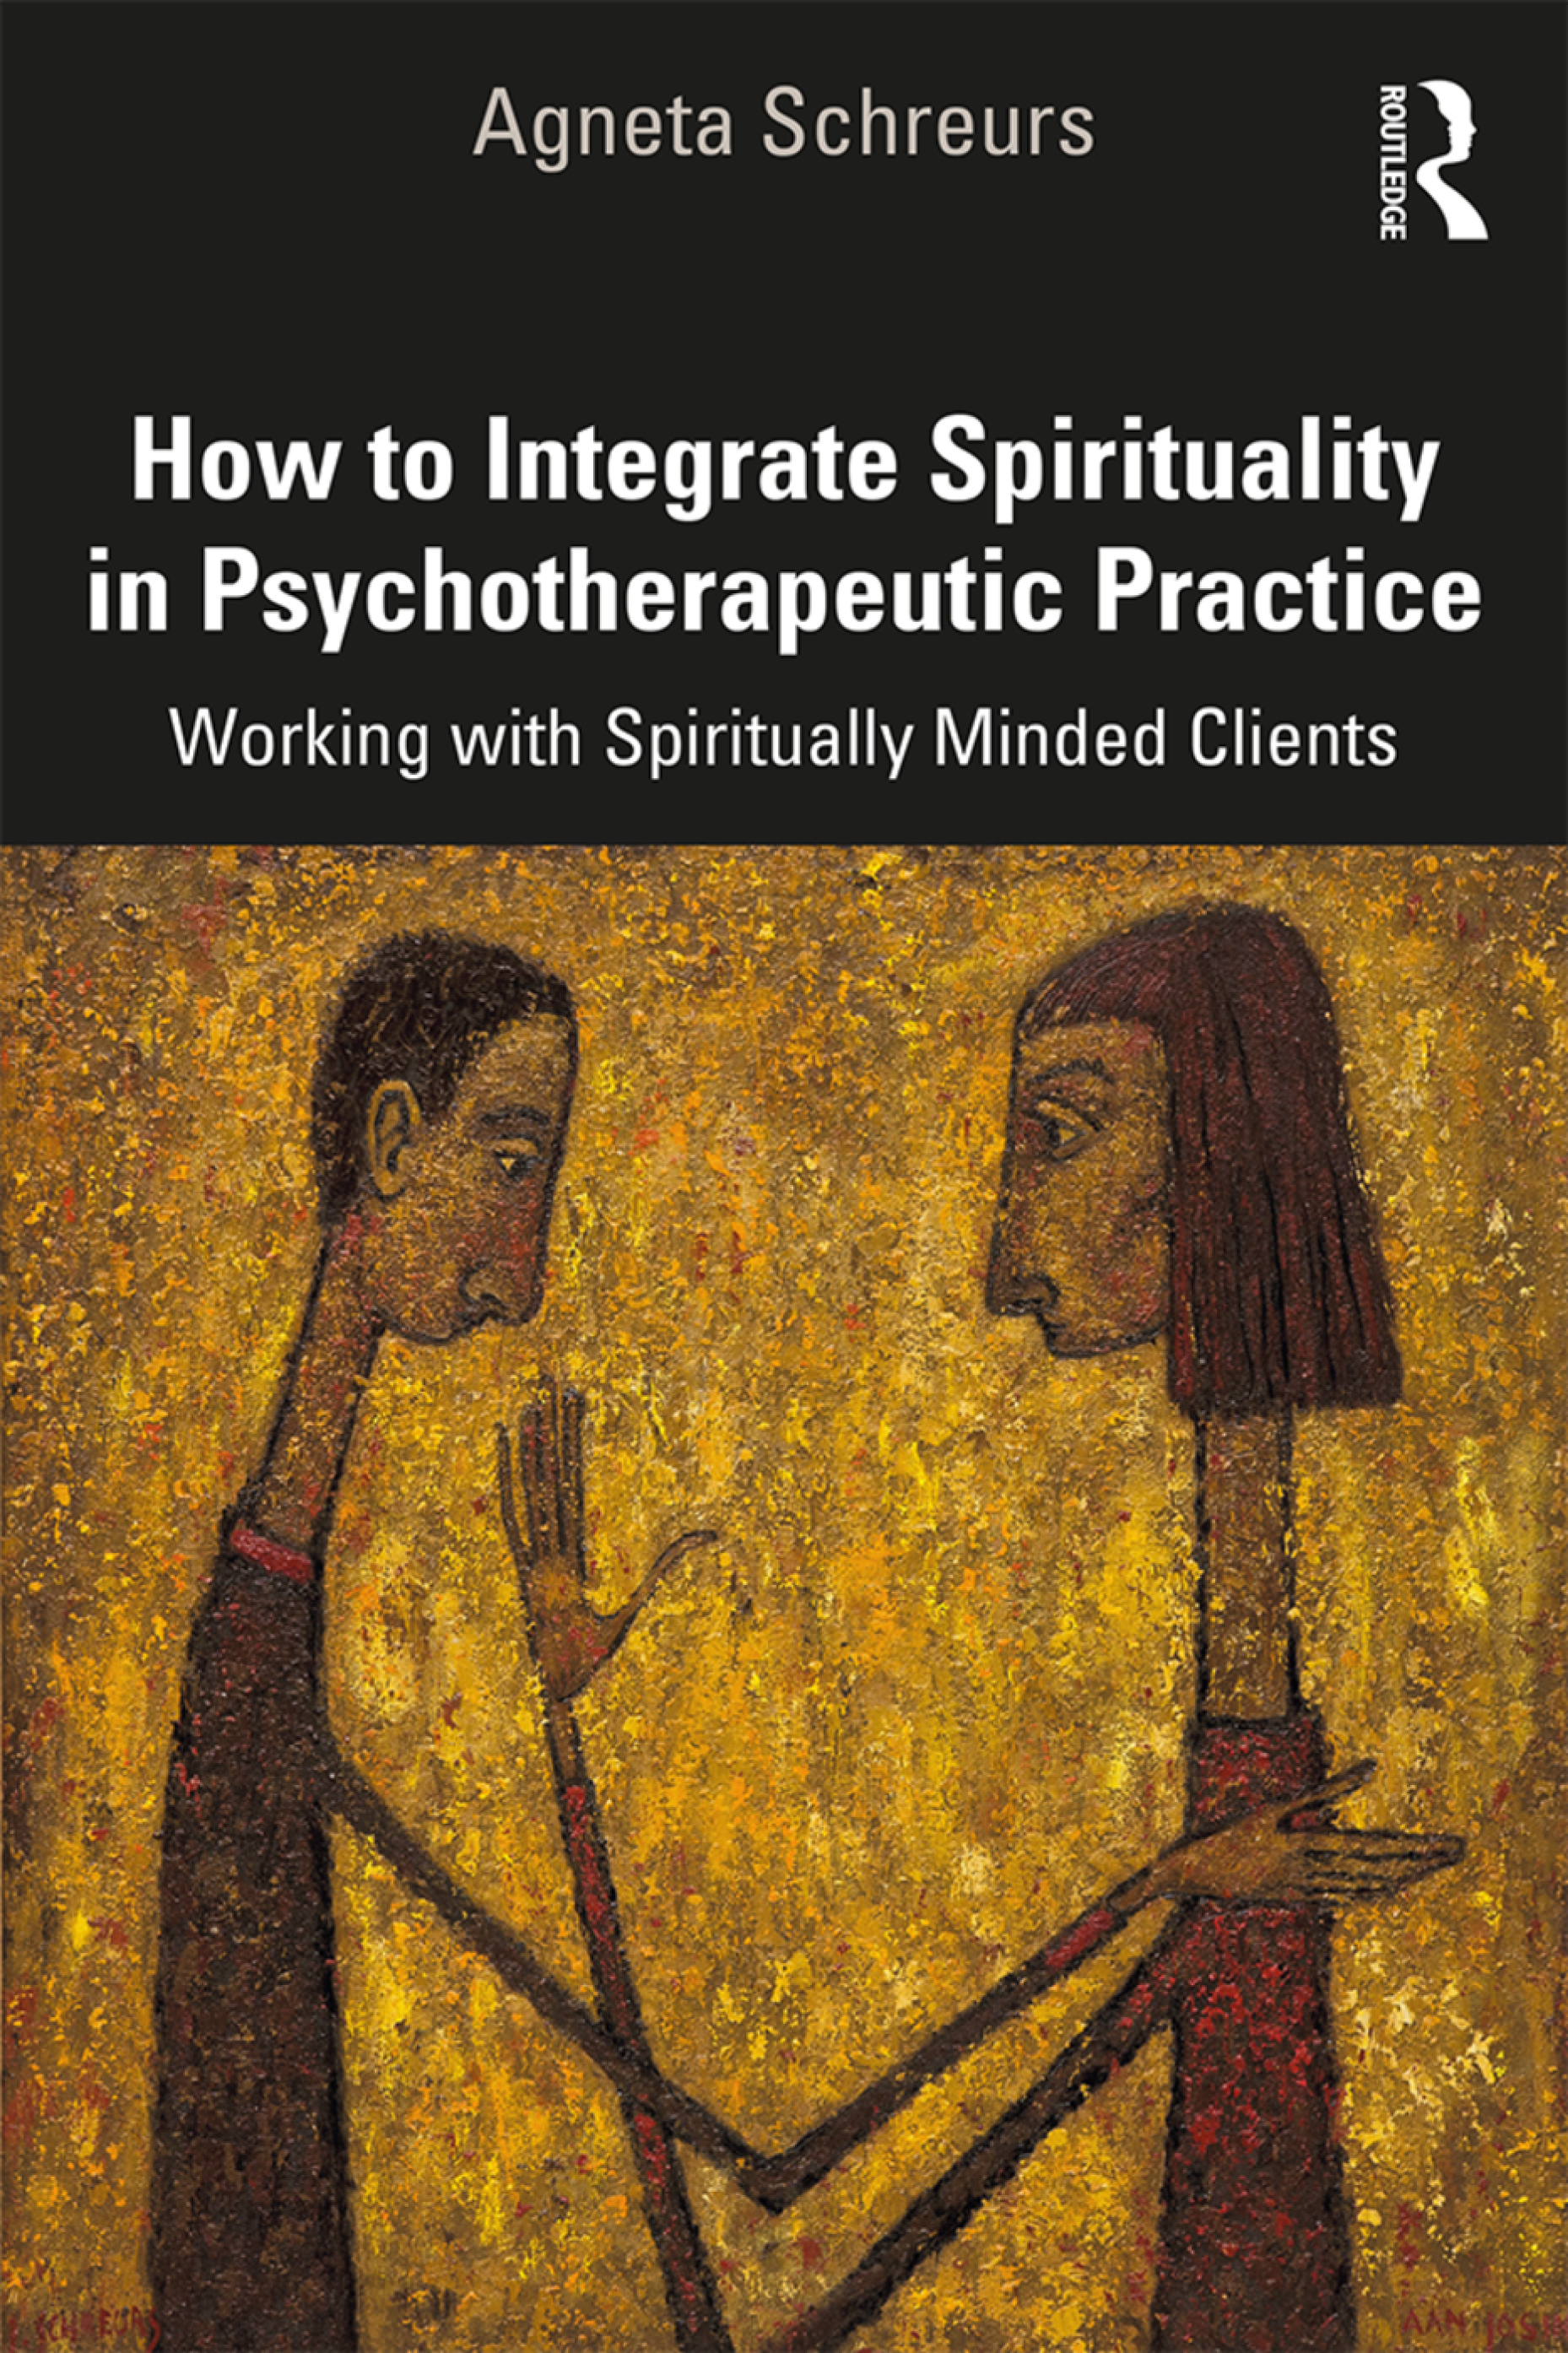 How to Integrate Spirituality in Psychotherapeutic Practice